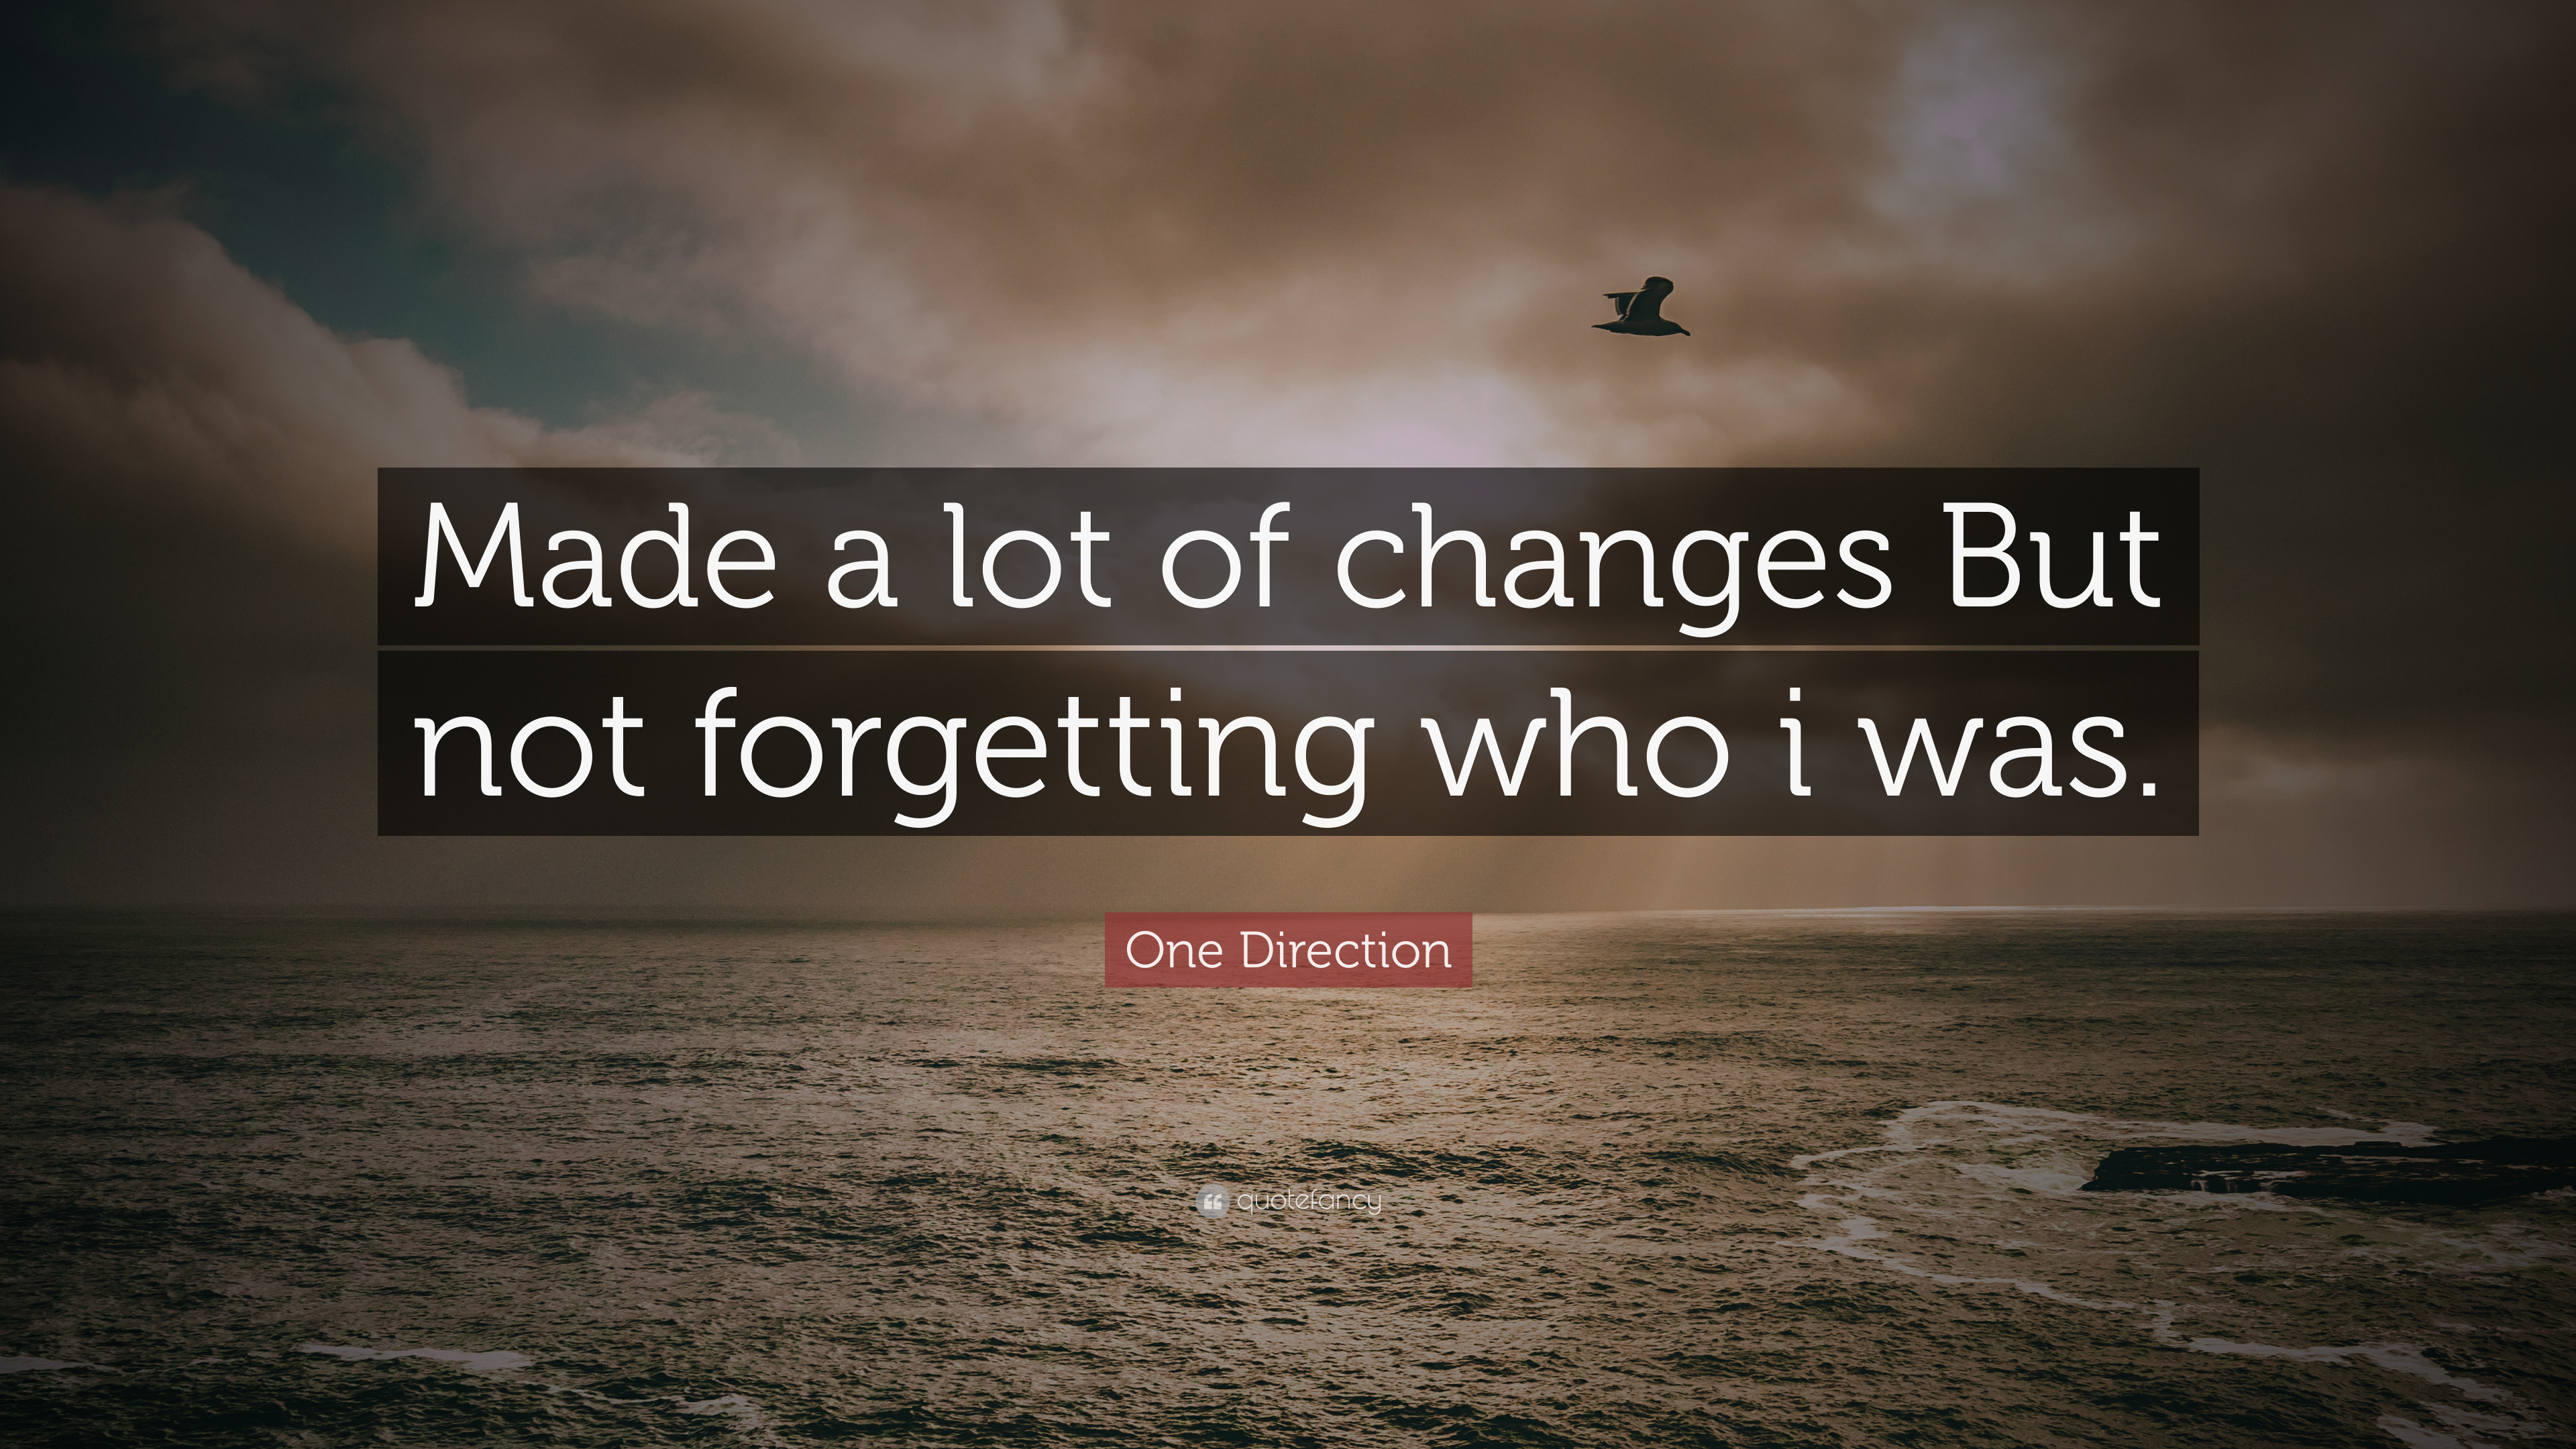 One Direction Quote Made A Lot Of Changes But Not Forgetting Who I